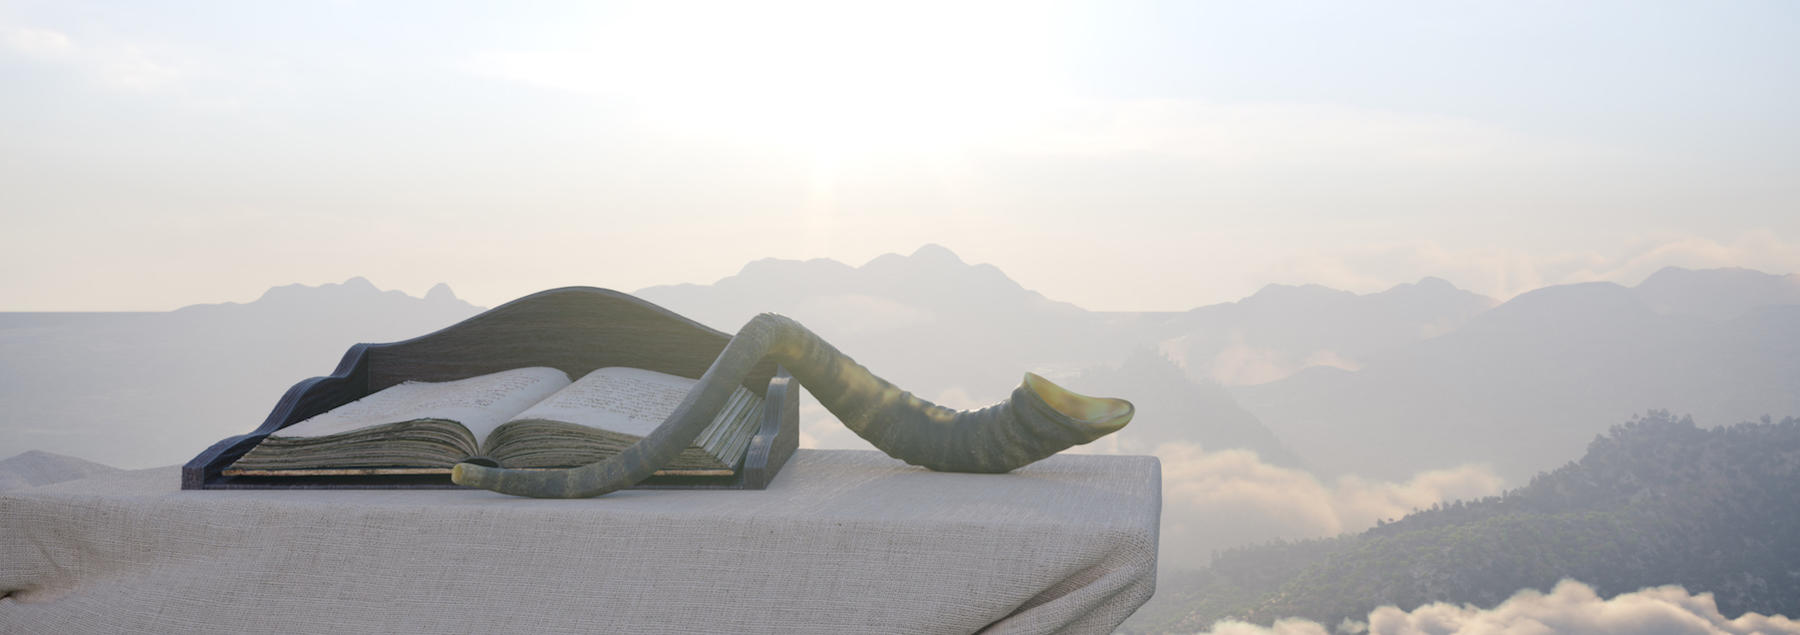 shofar and torah on an altar overlooking the mountains